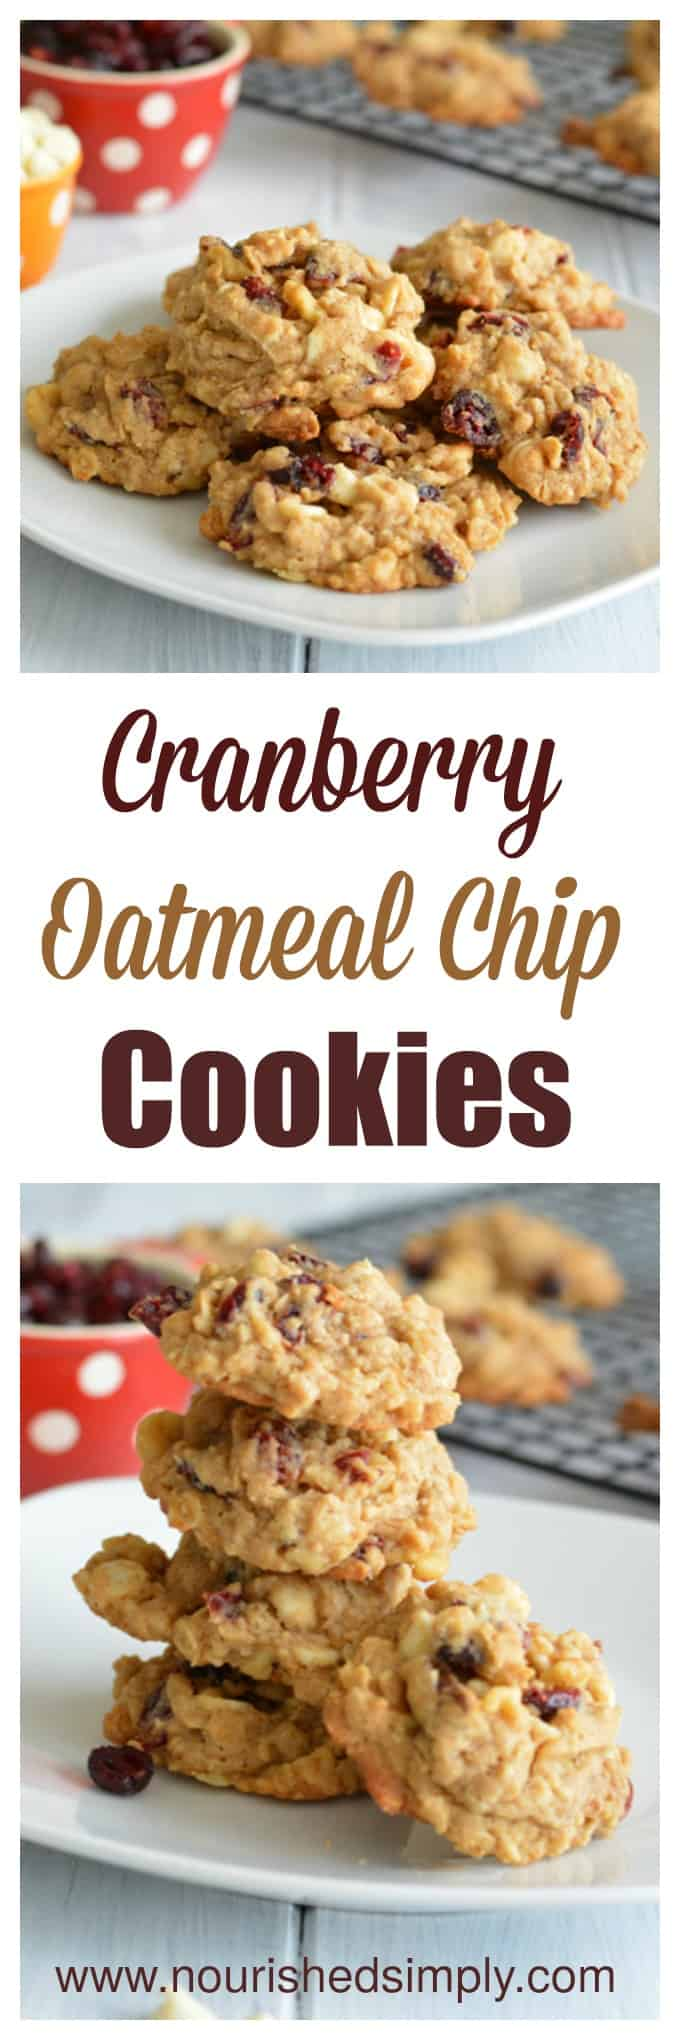 Cranberry Oatmeal Chip cookies are a healthier cooker made with whole grains perfect for your Holiday baking list.